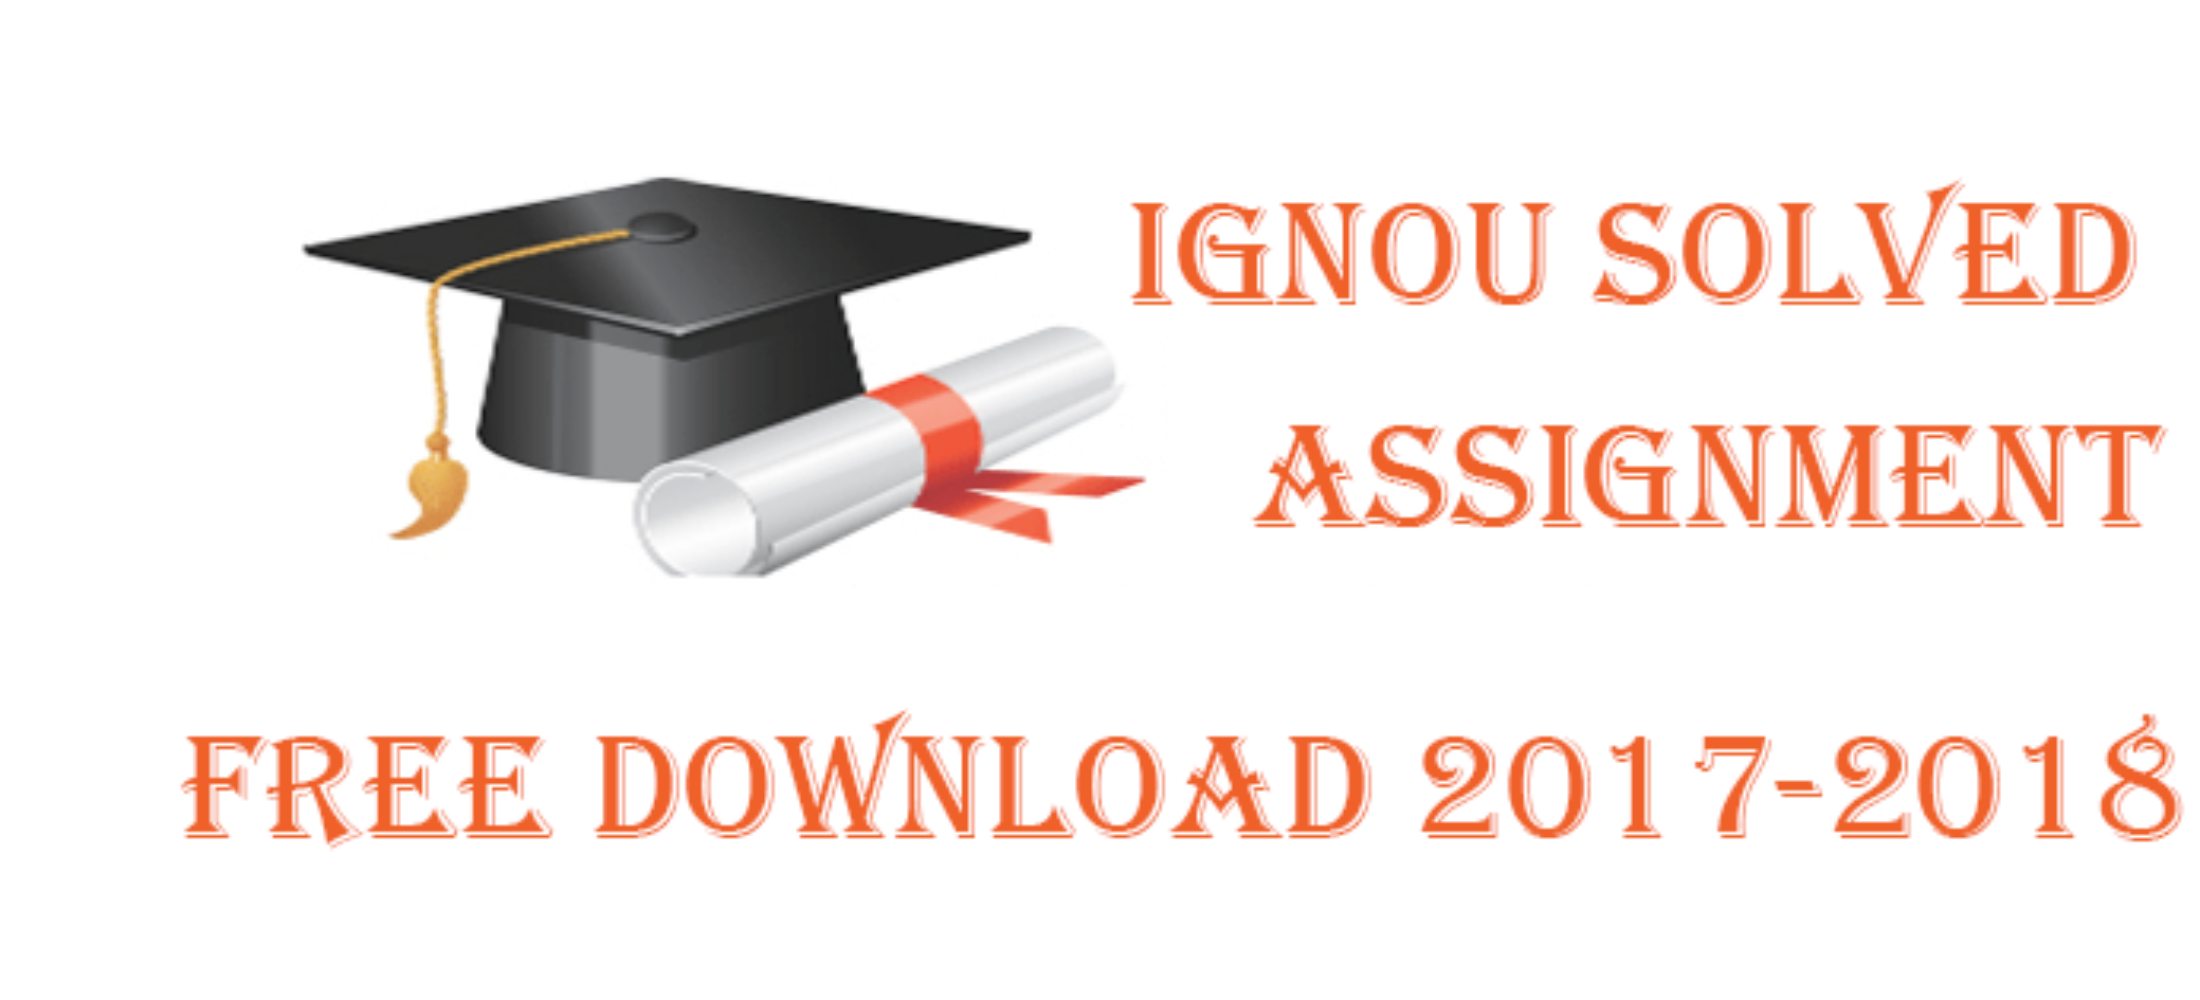 Ignou MARD Solved Assignment 9599329471 - 2017-18-19 Free Download